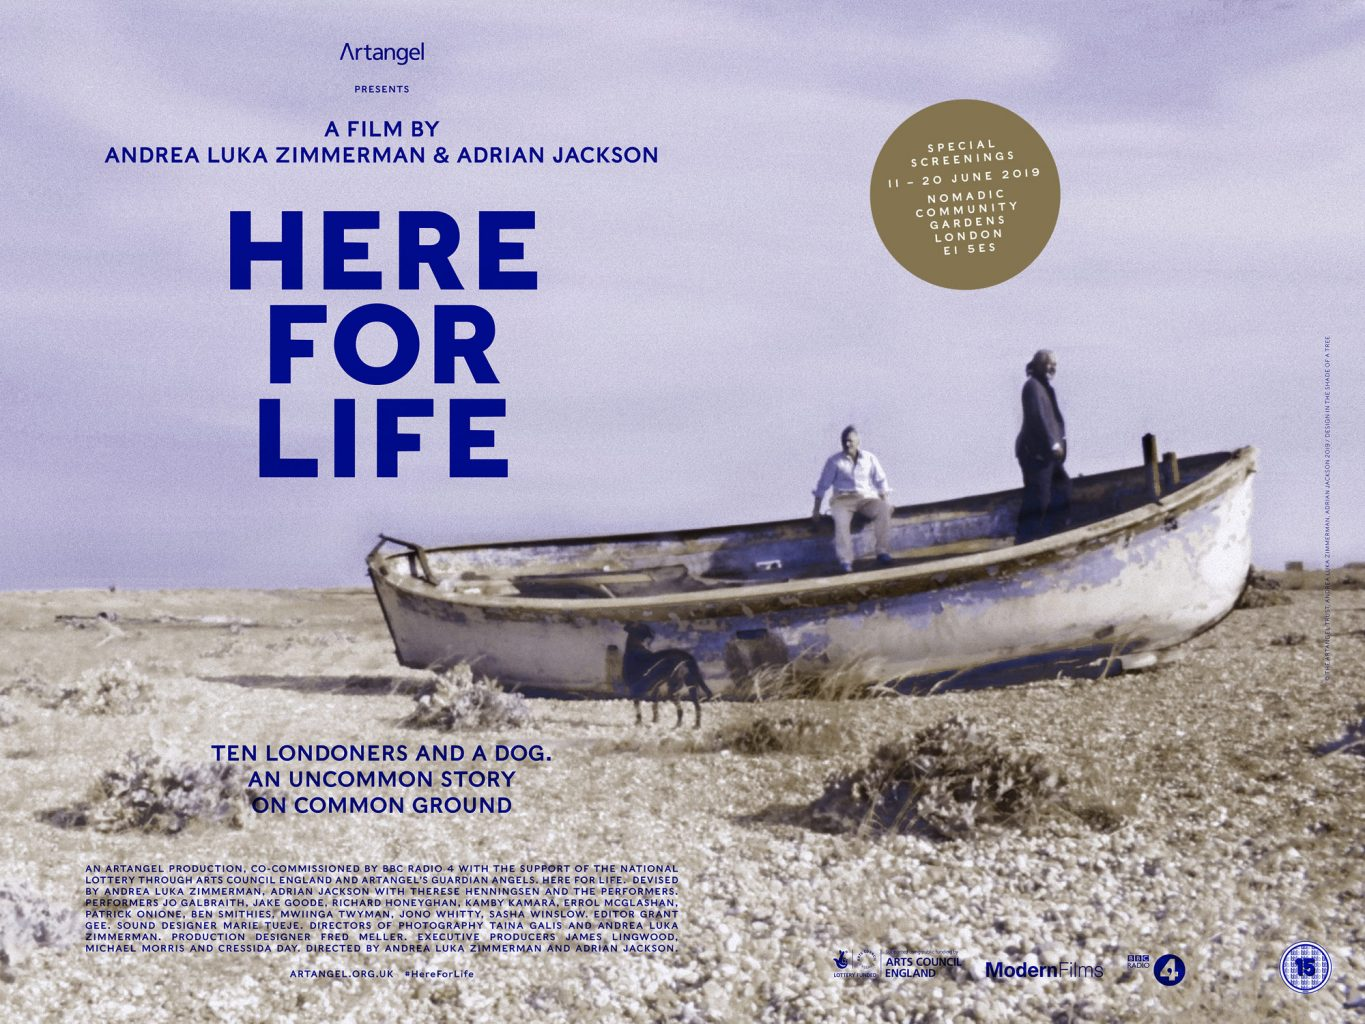 Poster and printed matter for Here for Life, a film by Andrea Luka Zimmerman and Adrian Jackson, produced by Artangel London designed by In the shade of a tree studio, founded by Sophie Demay and Maël Fournier Comte.